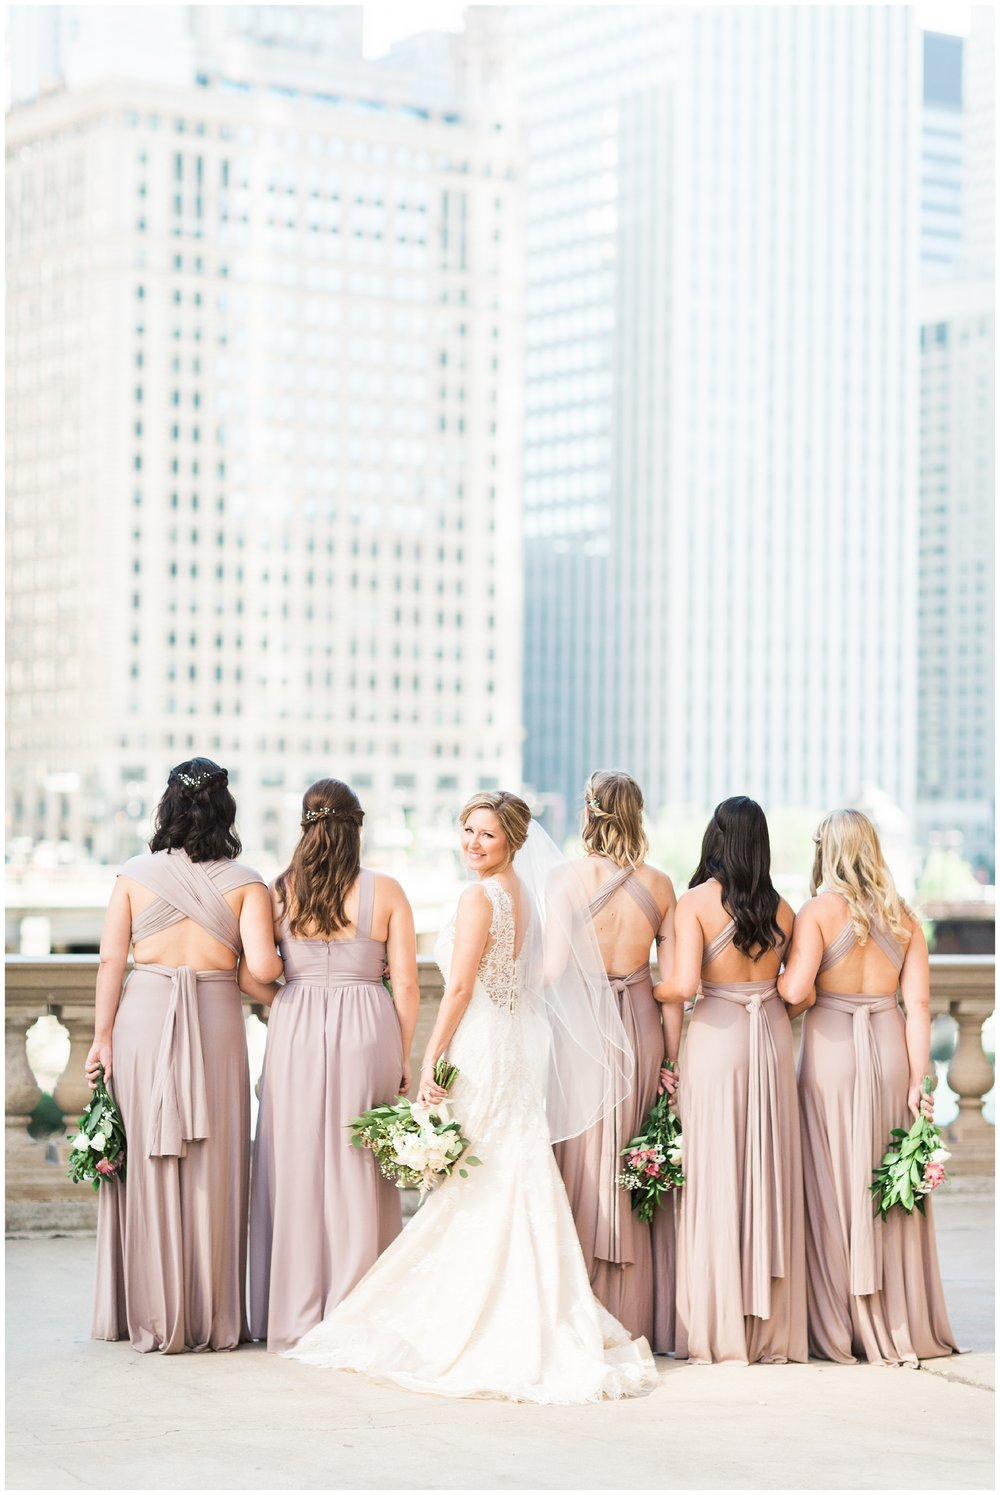 RebeccaHaleyPhotography_Denverweddingphotographer_Denverbride_coloradobride_chicagobride_chicagowedding_tribunetowerwedding_chicagoweddingphotographer_0041.jpg